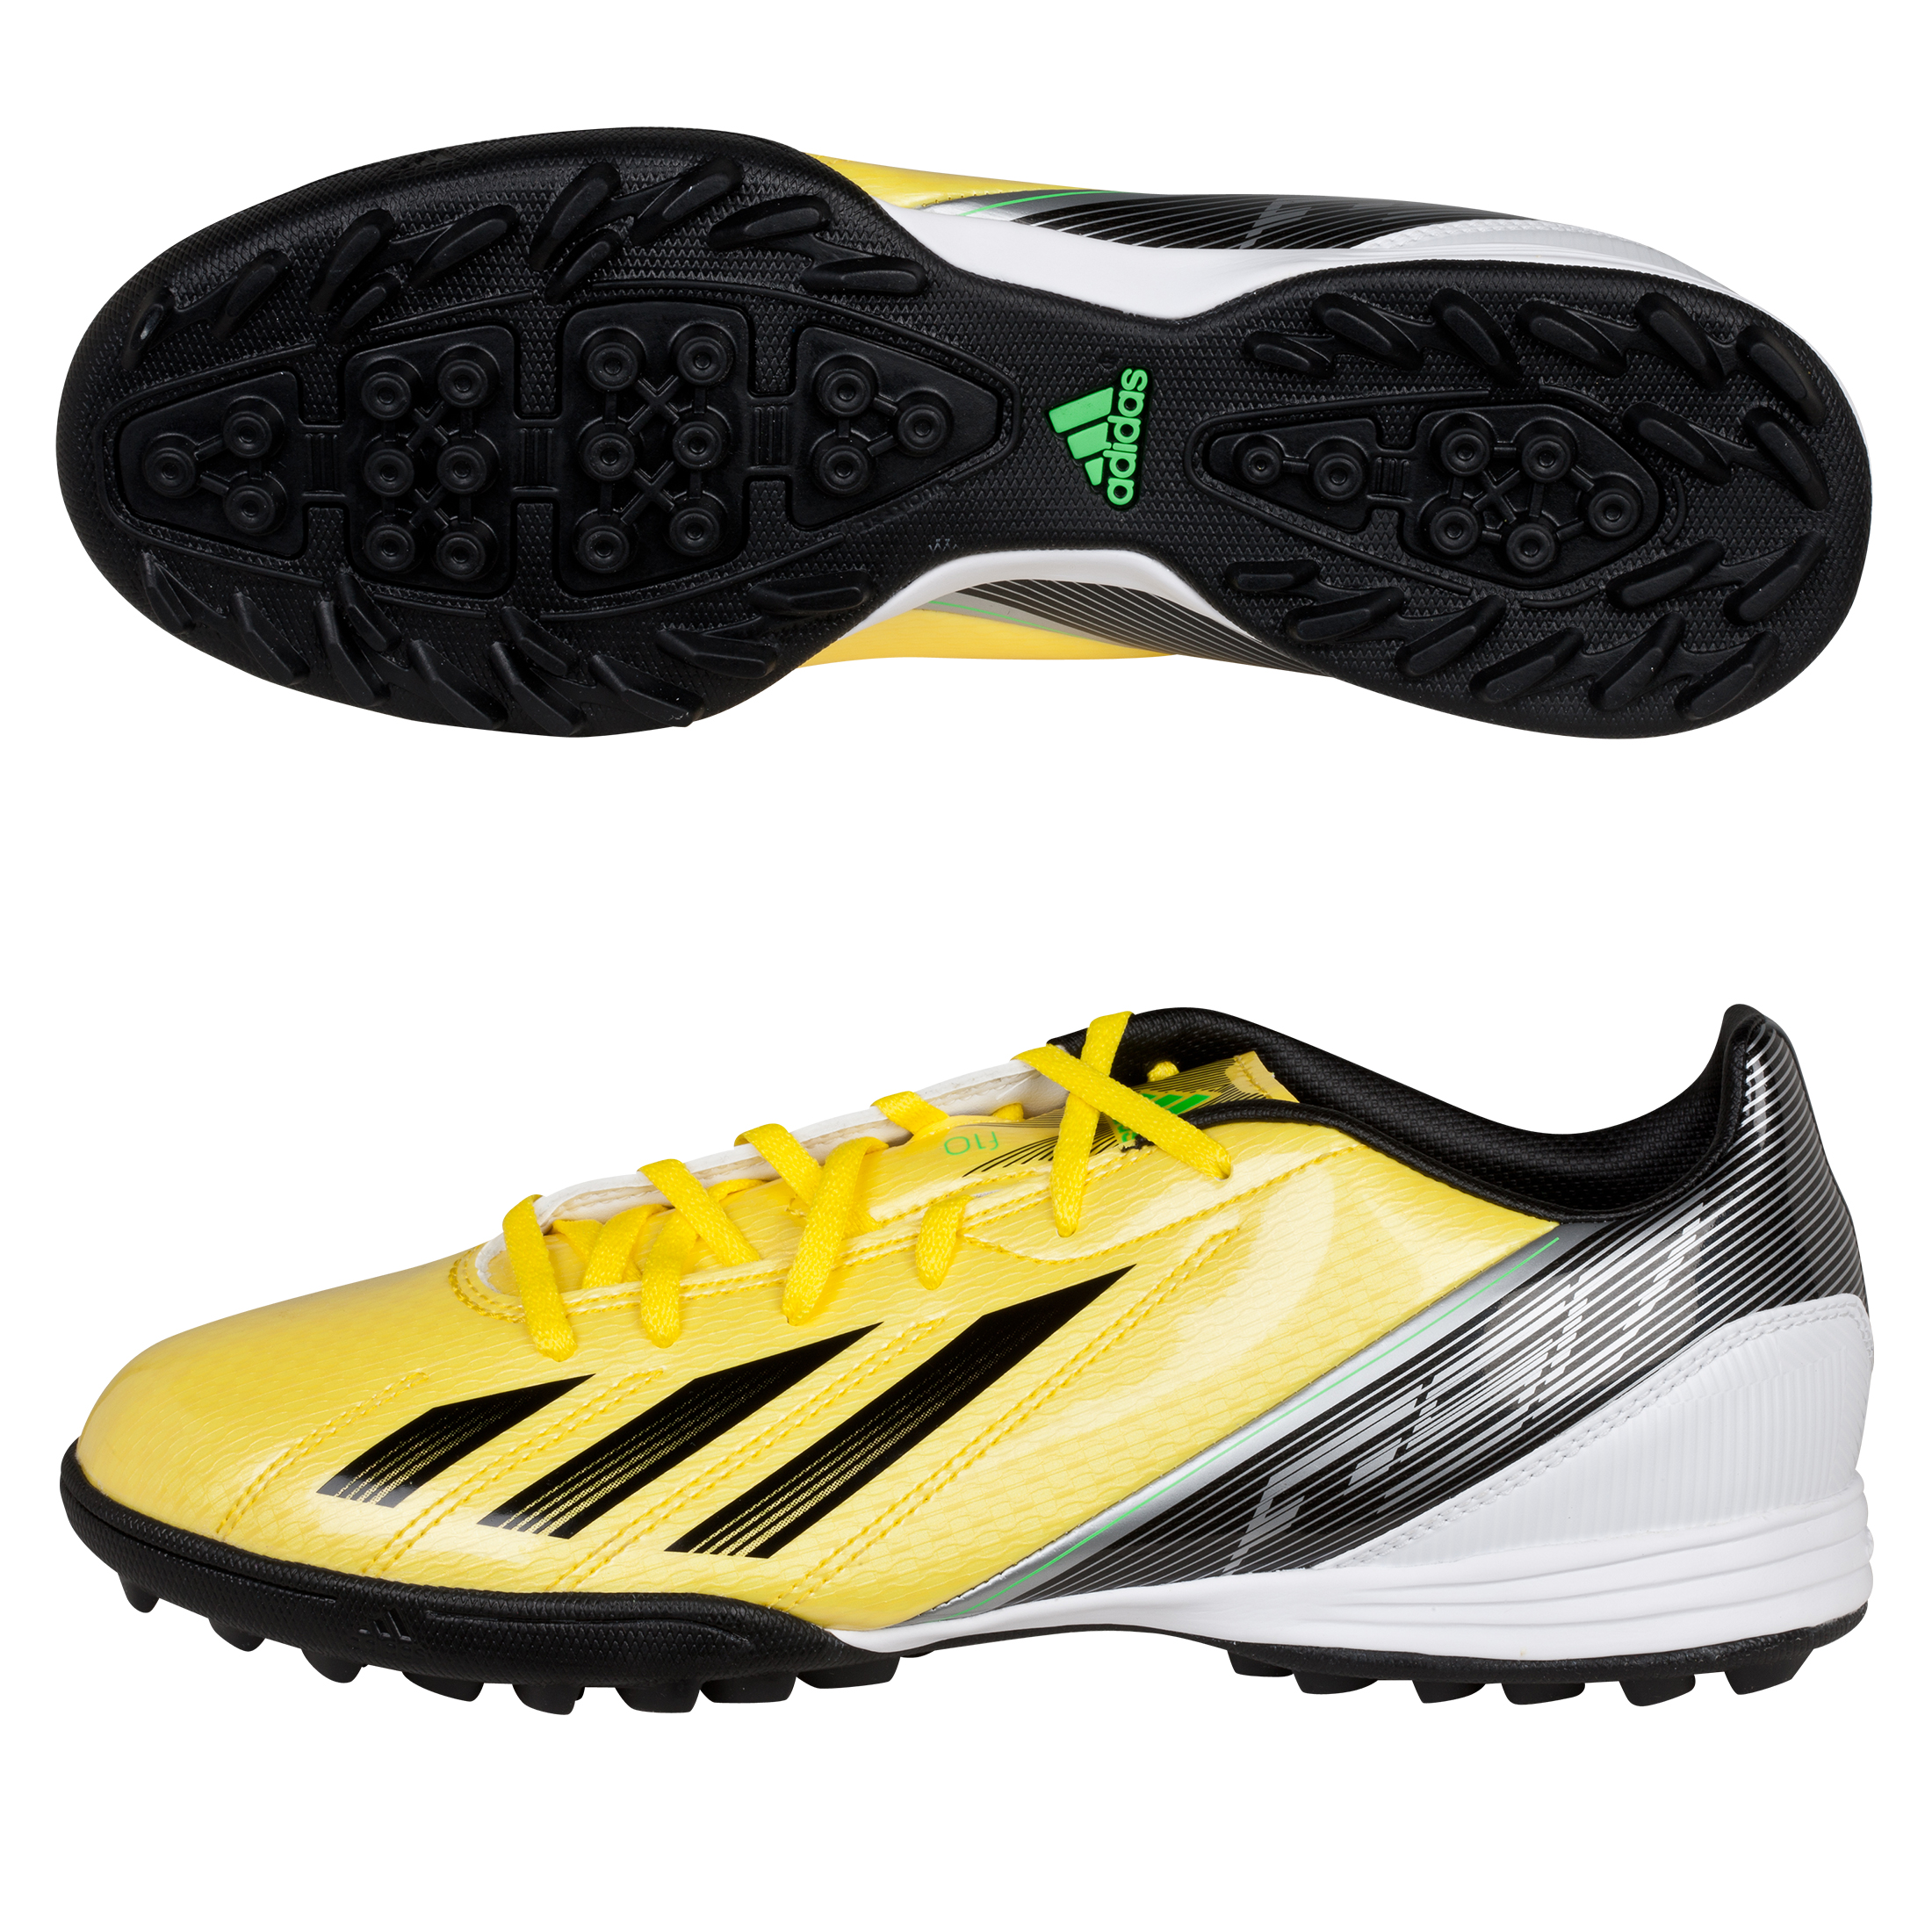 adidas Adizero F10 TRX Astroturf Trainers - Vivid Yellow/Black/Green Zest